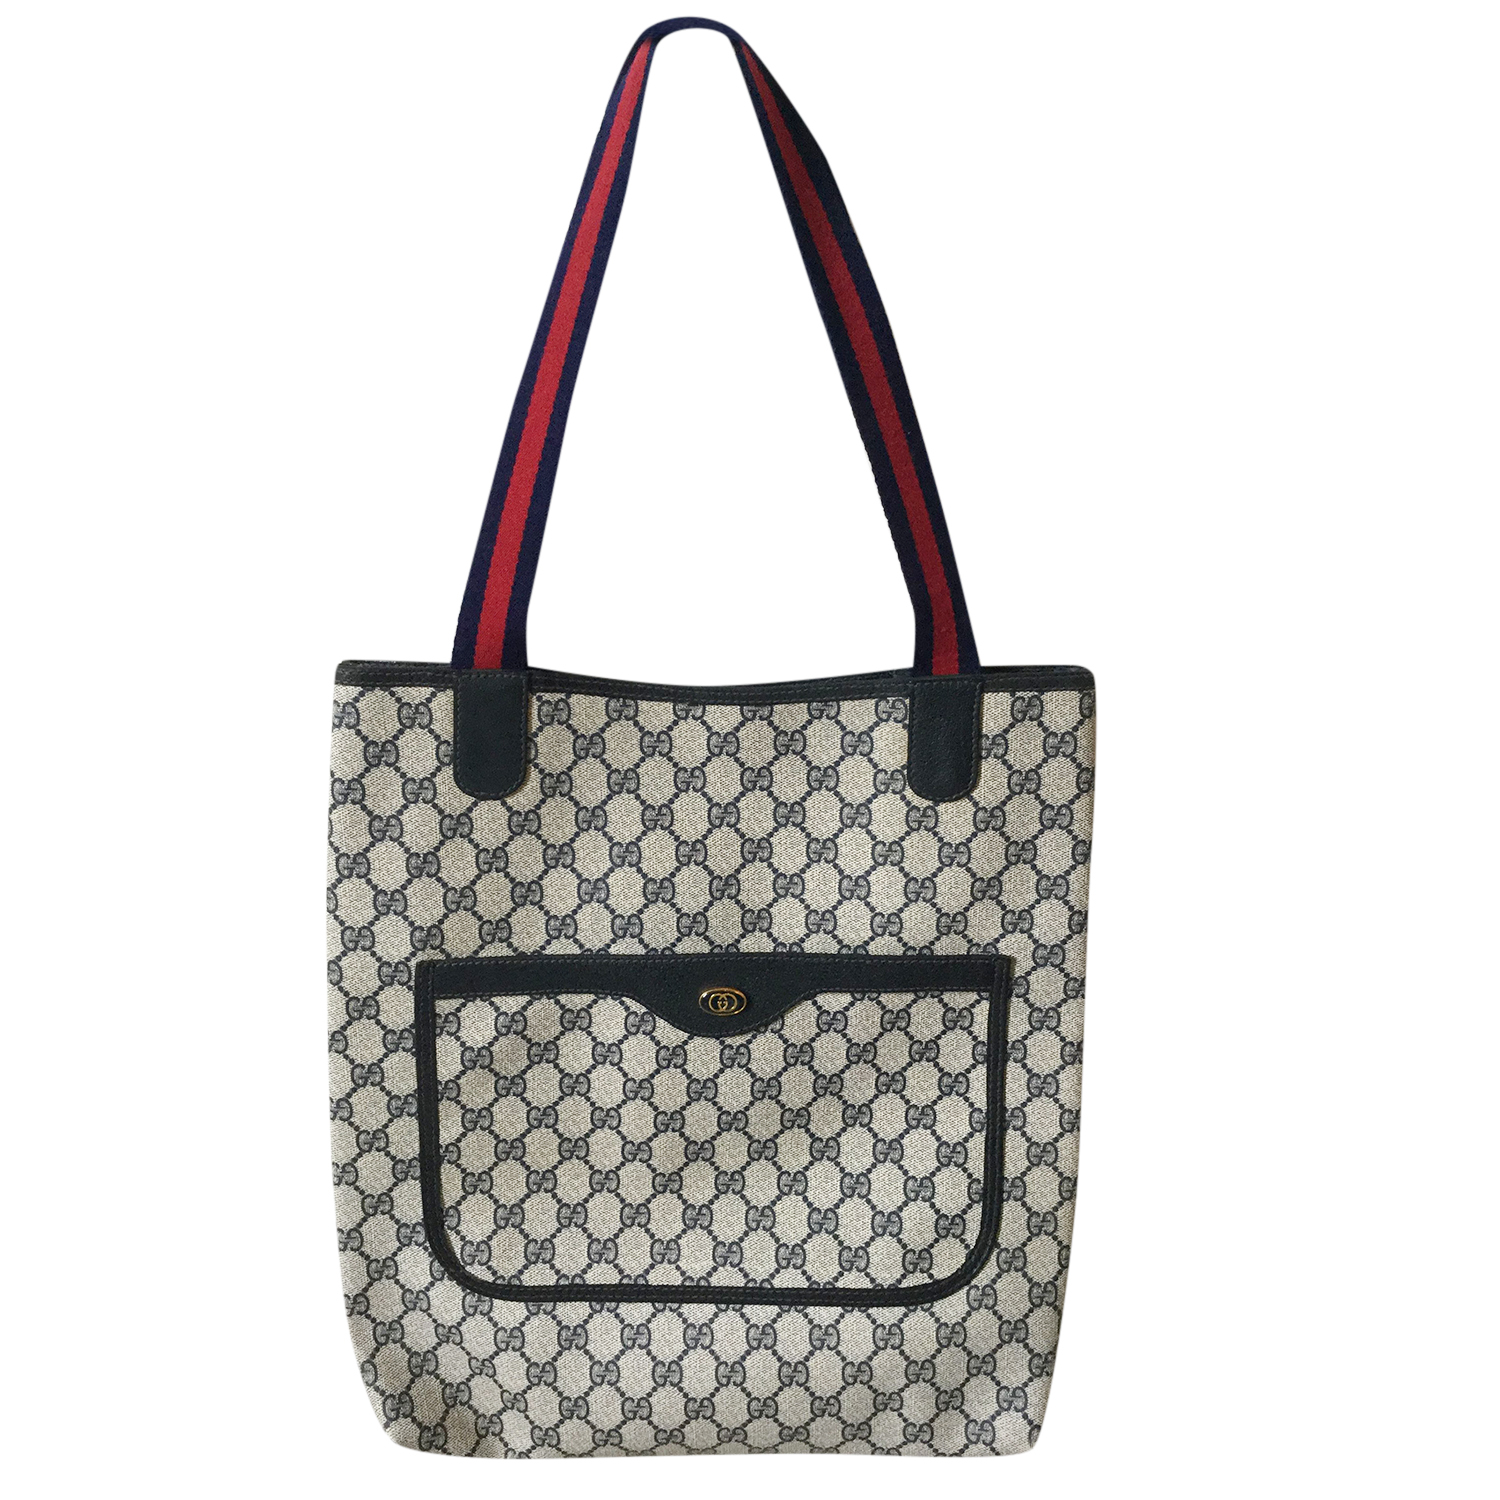 9f54c5be1d1d Gucci Vintage Monogram Coated Canvas Tote | HEWI London